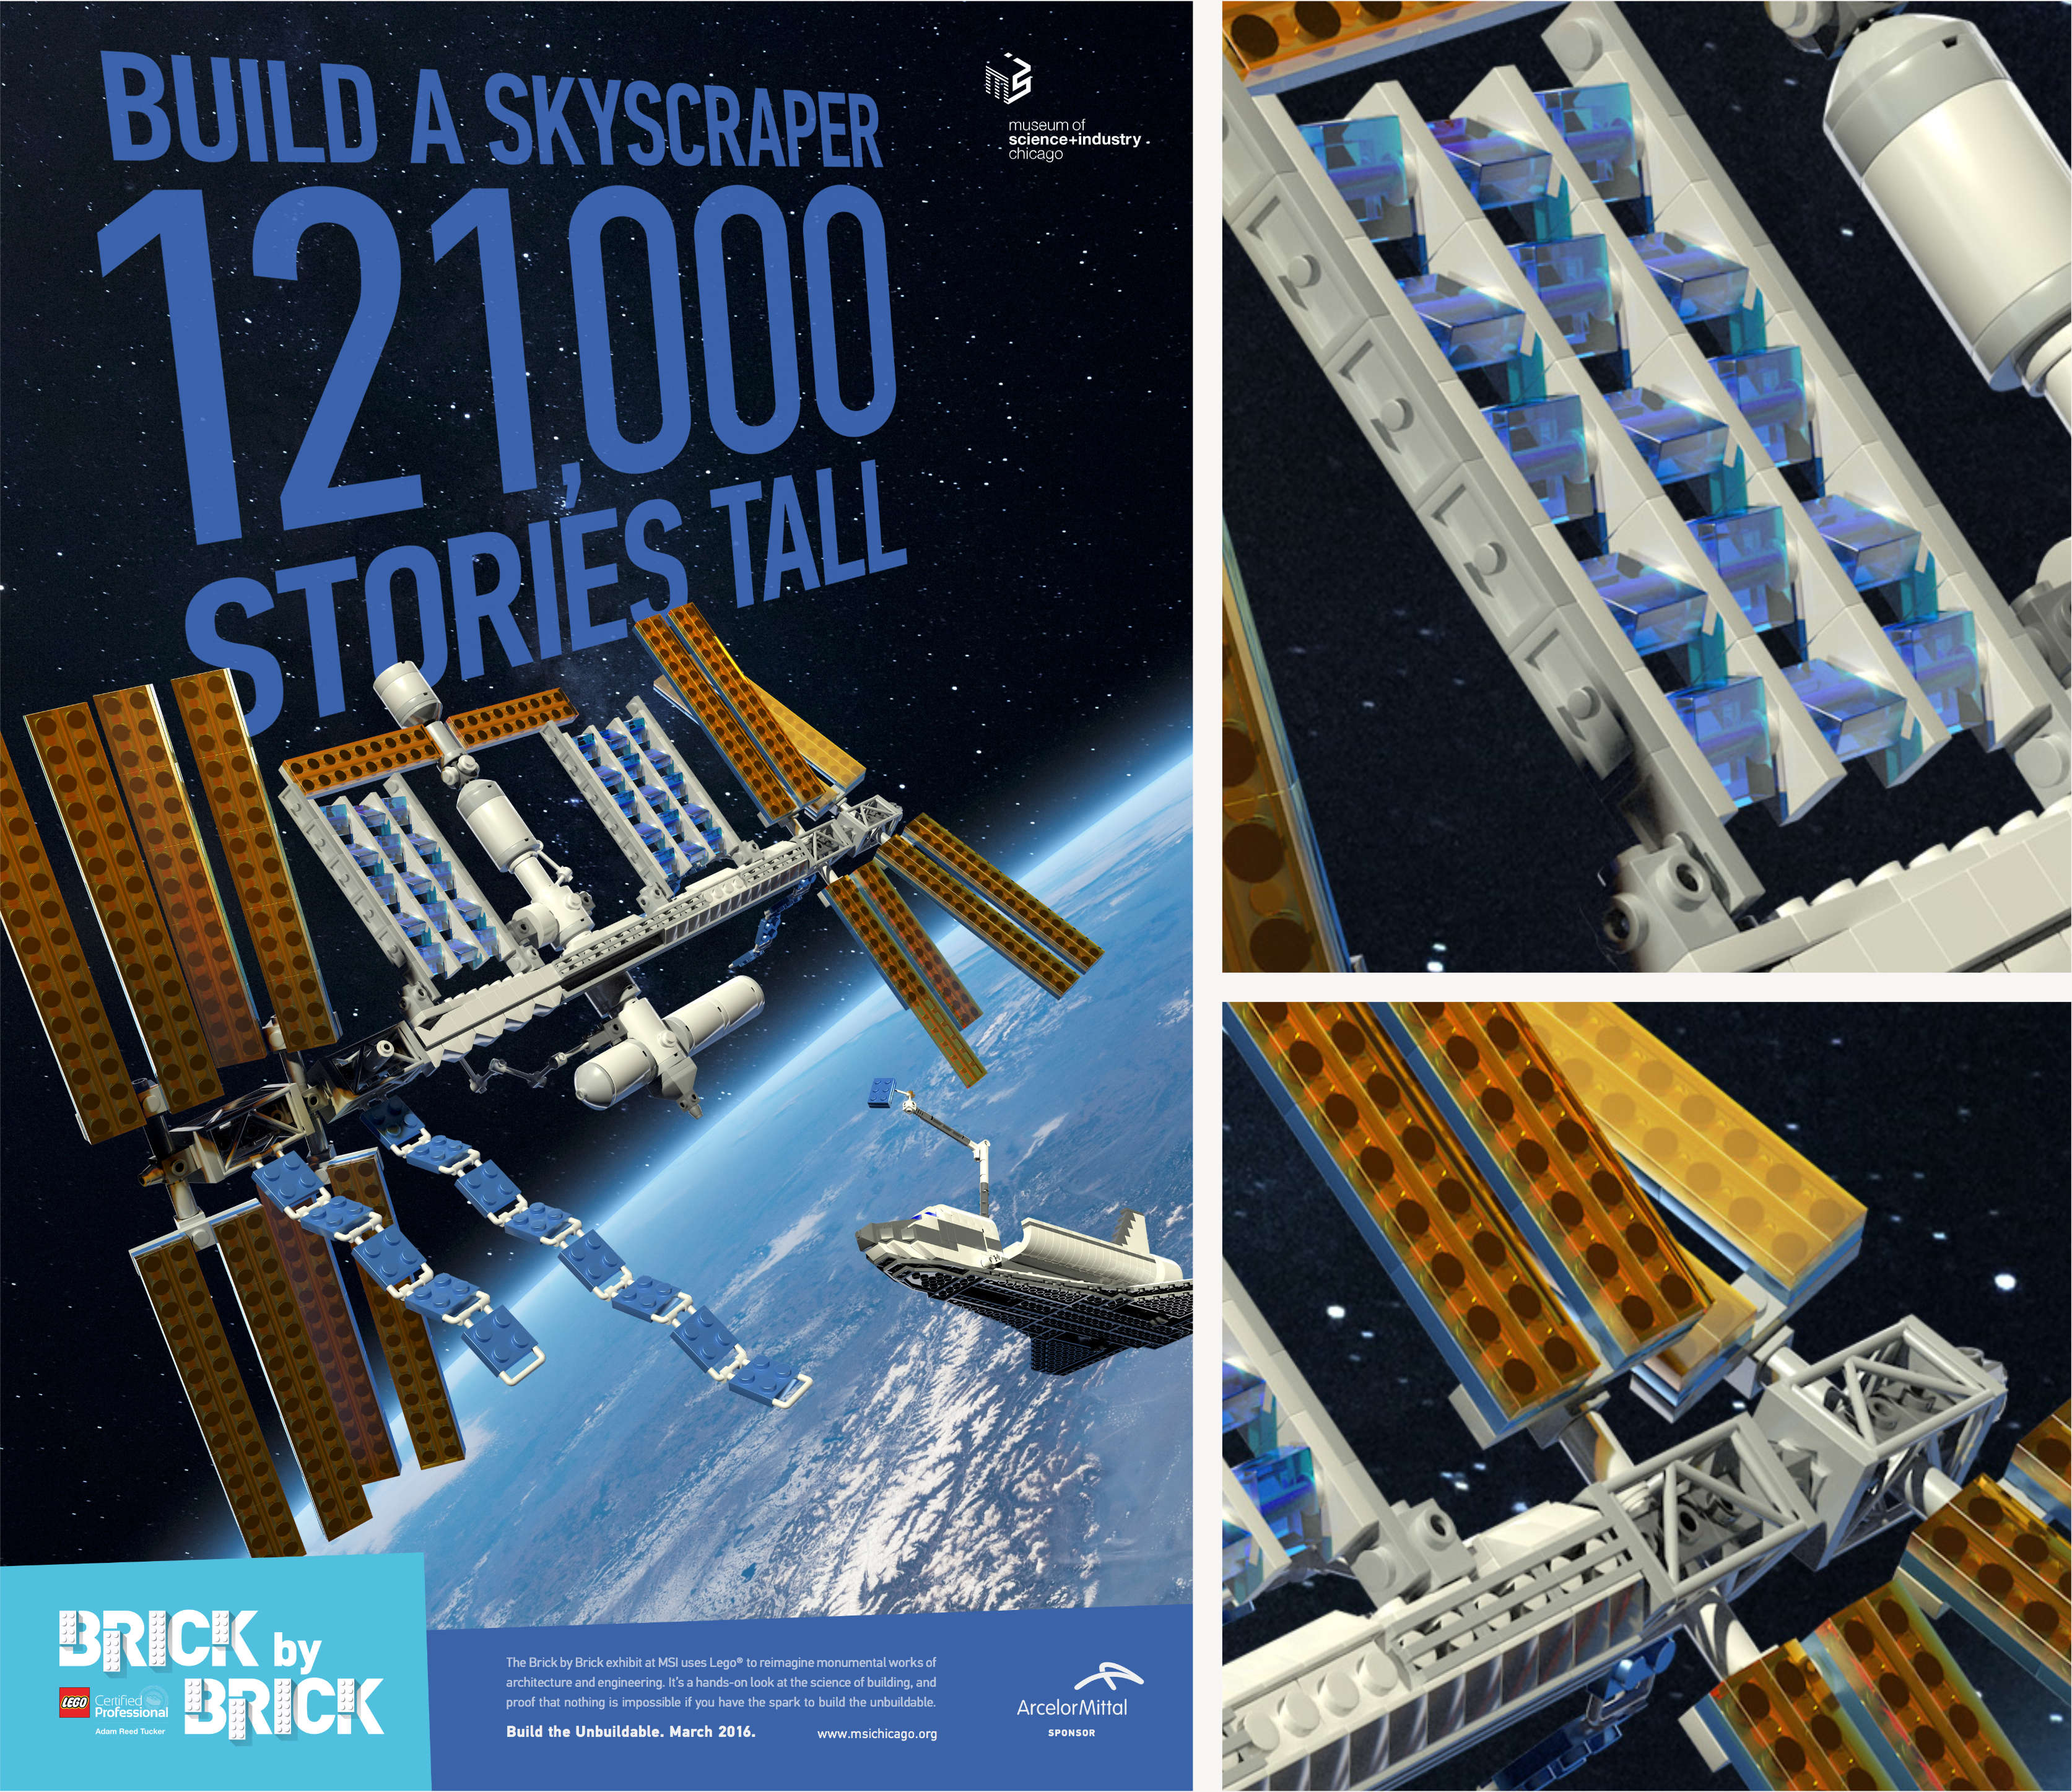 LEGO Space Station advertisement design.